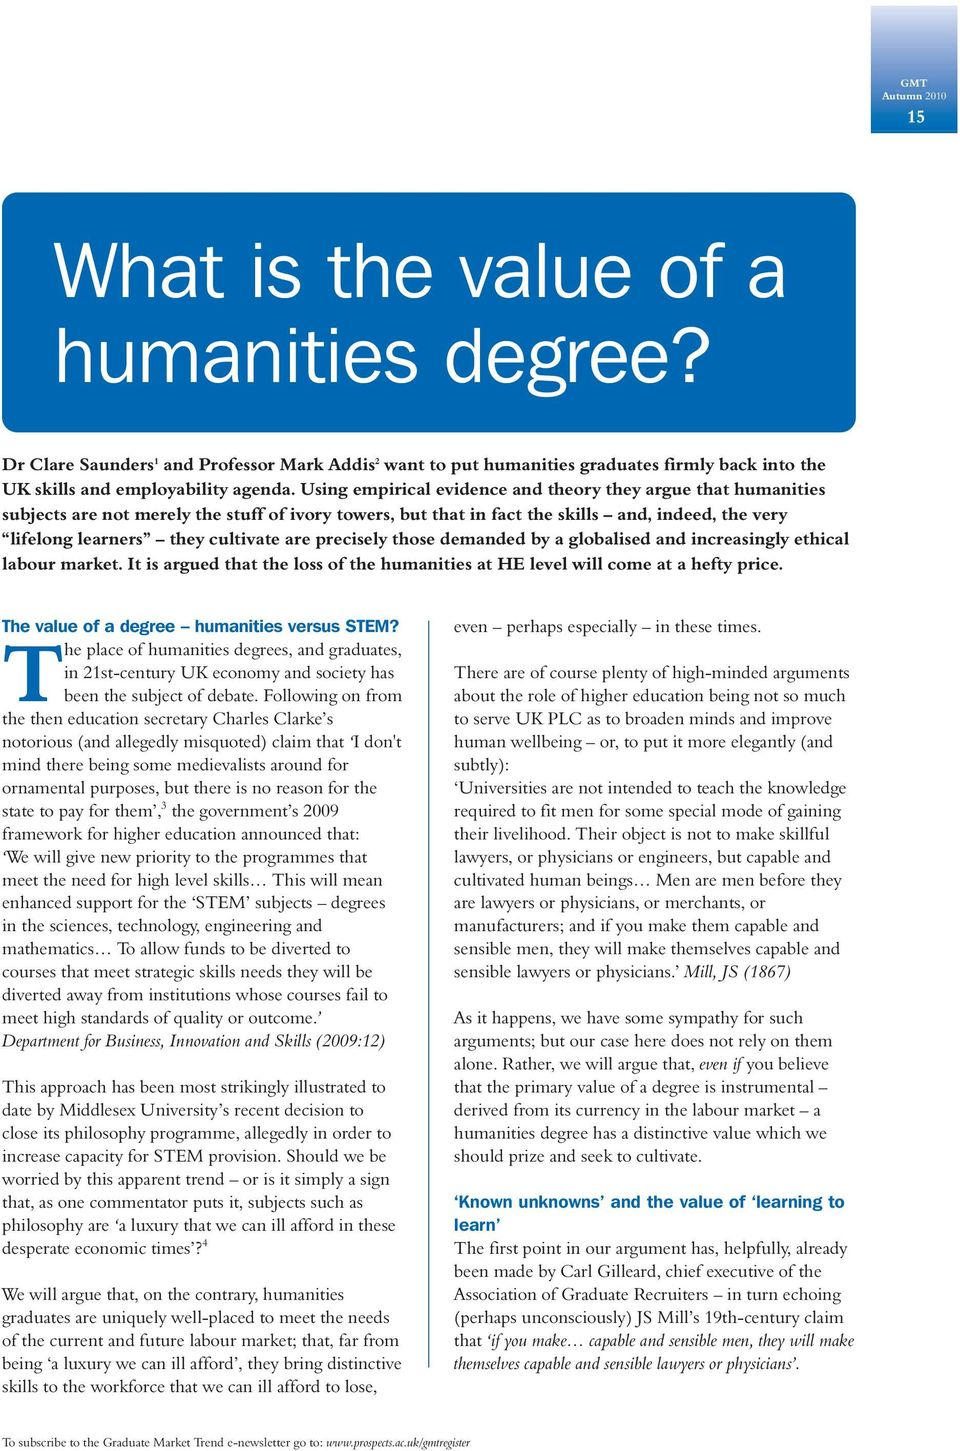 are precisely those demanded by a globalised and increasingly ethical labour market. It is argued that the loss of the humanities at HE level will come at a hefty price.